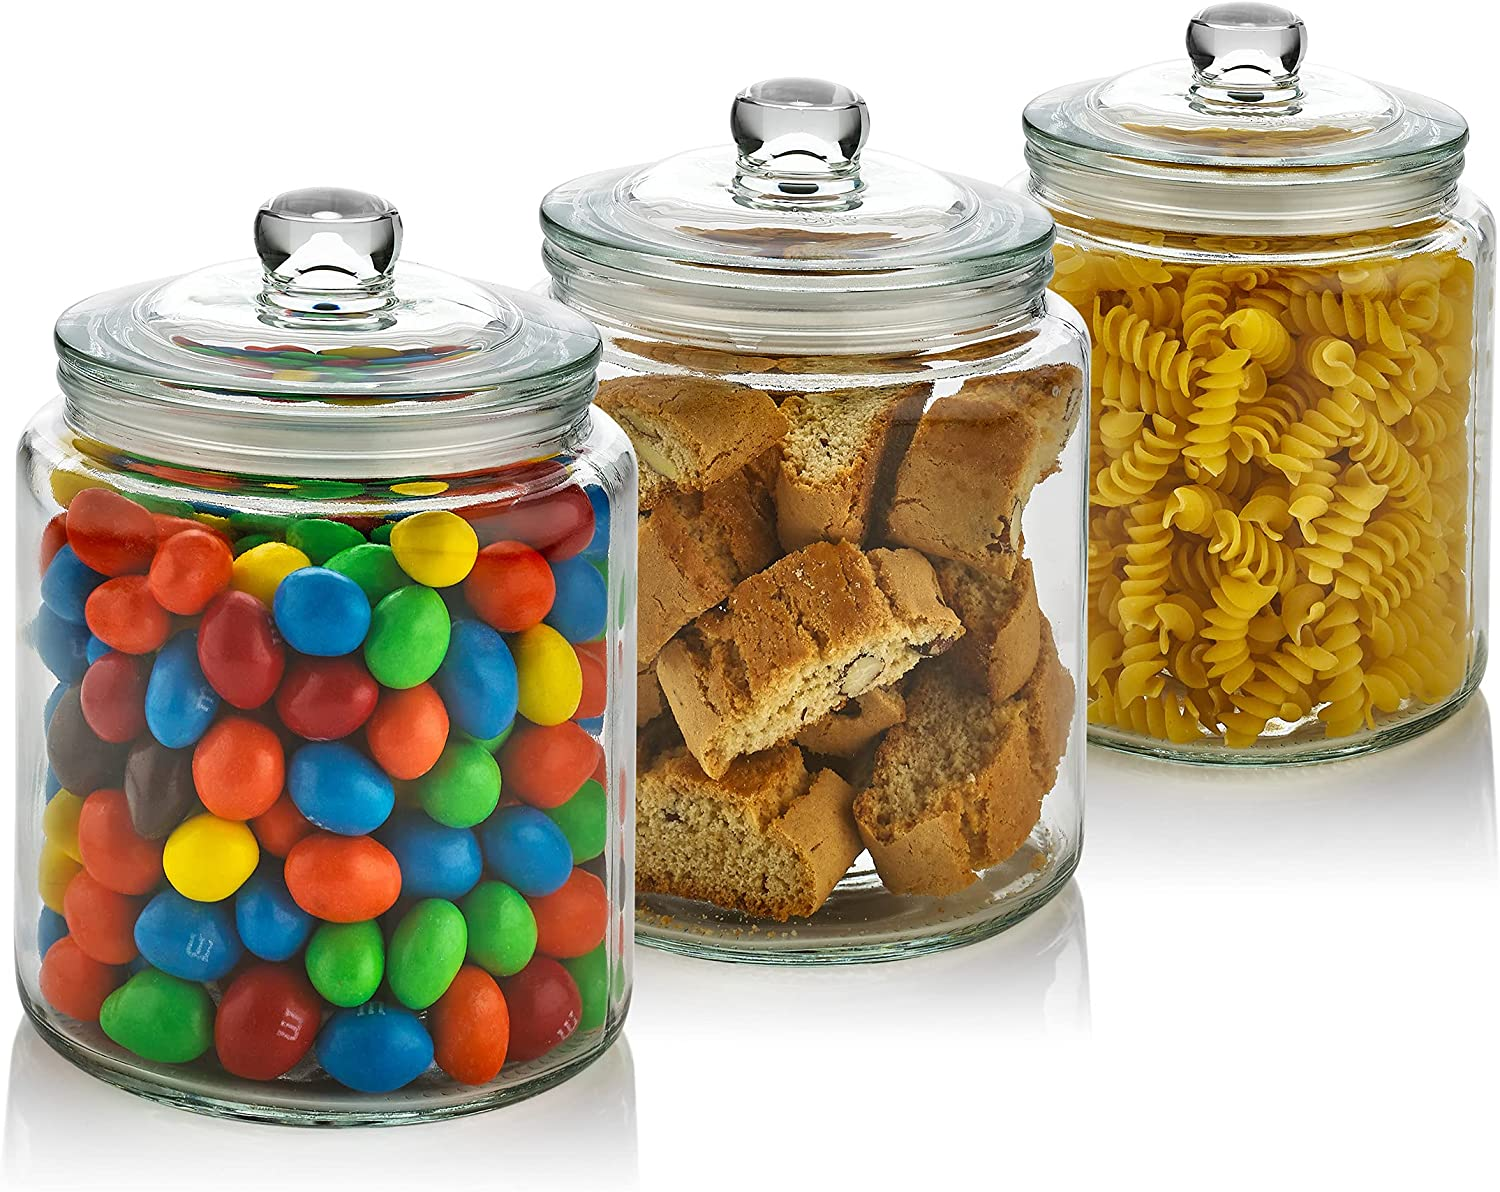 3 Pc 30oz Clear Glass Storage Jar with Lids - Airtight Food Jars - Glass Kitchen Containers for Pantry, Countertop